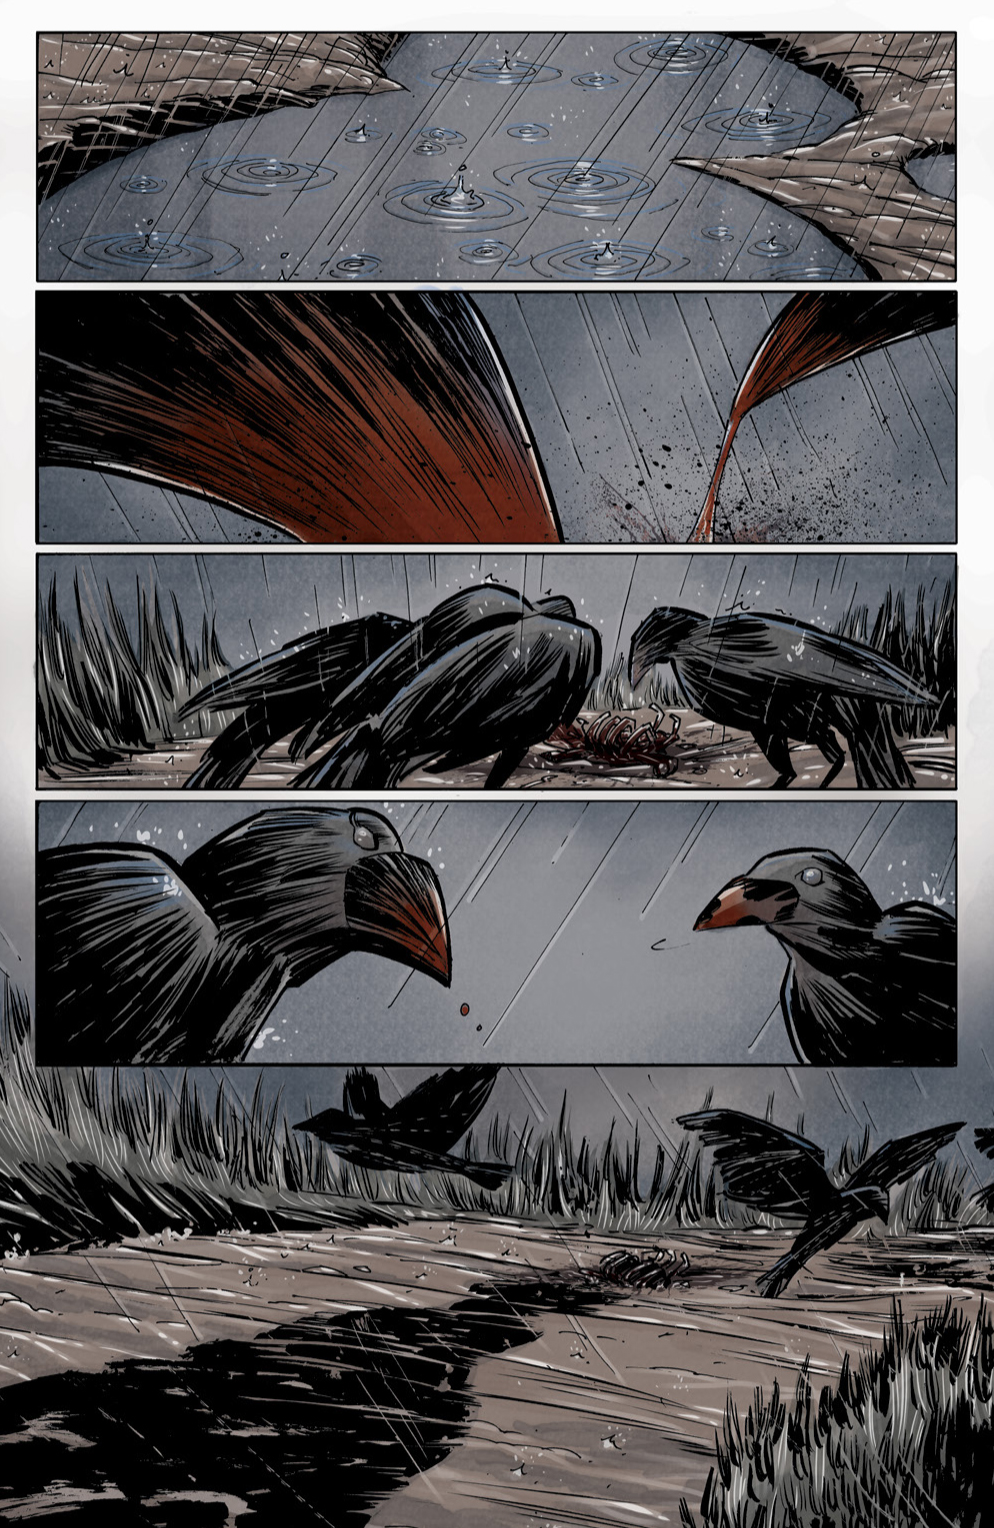 THE LAST SIEGE #1 PG 01-26 PREVIEW-3.jpg